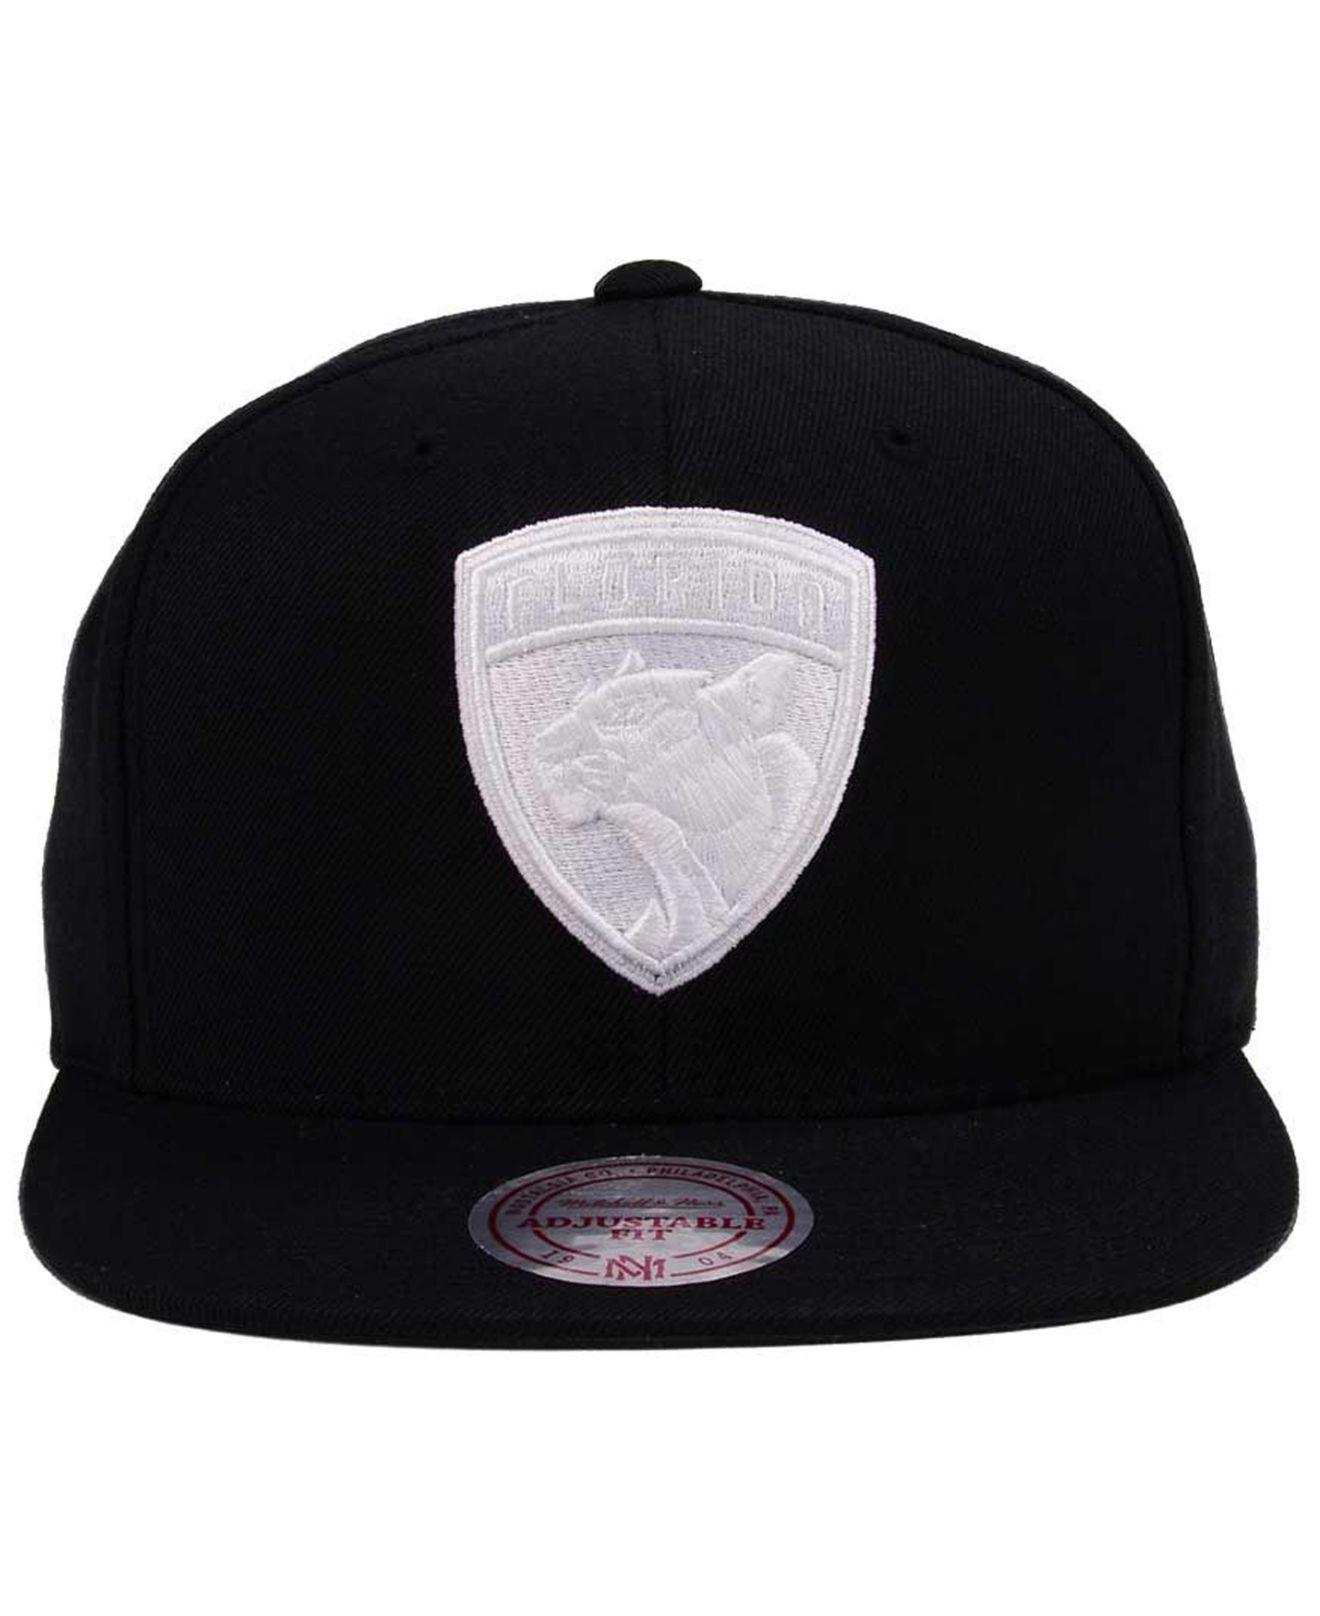 online store f26d3 5ba82 ... new zealand lyst mitchell ness respect snapback cap in black for men  c5e15 0c949